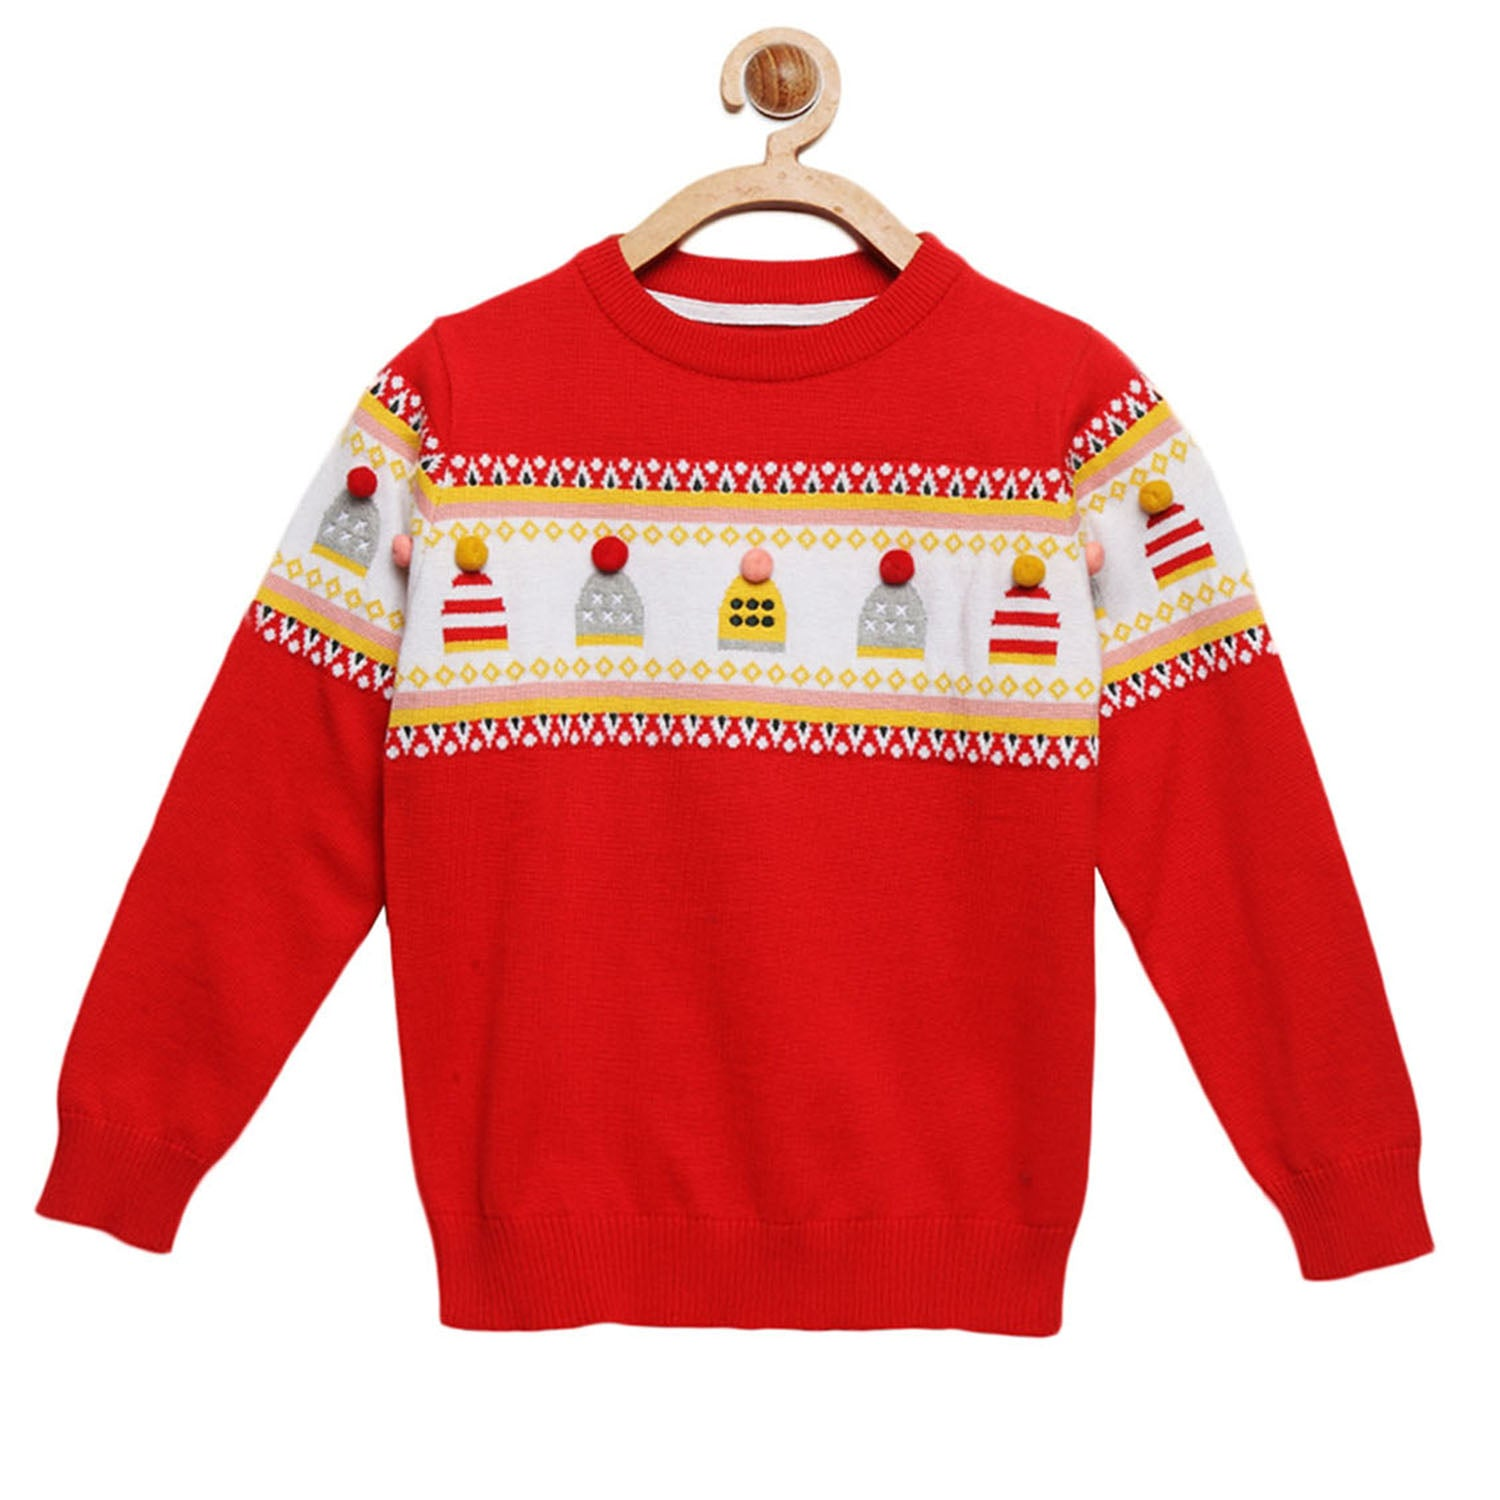 Winter Essential Sweater for Boys & Girls